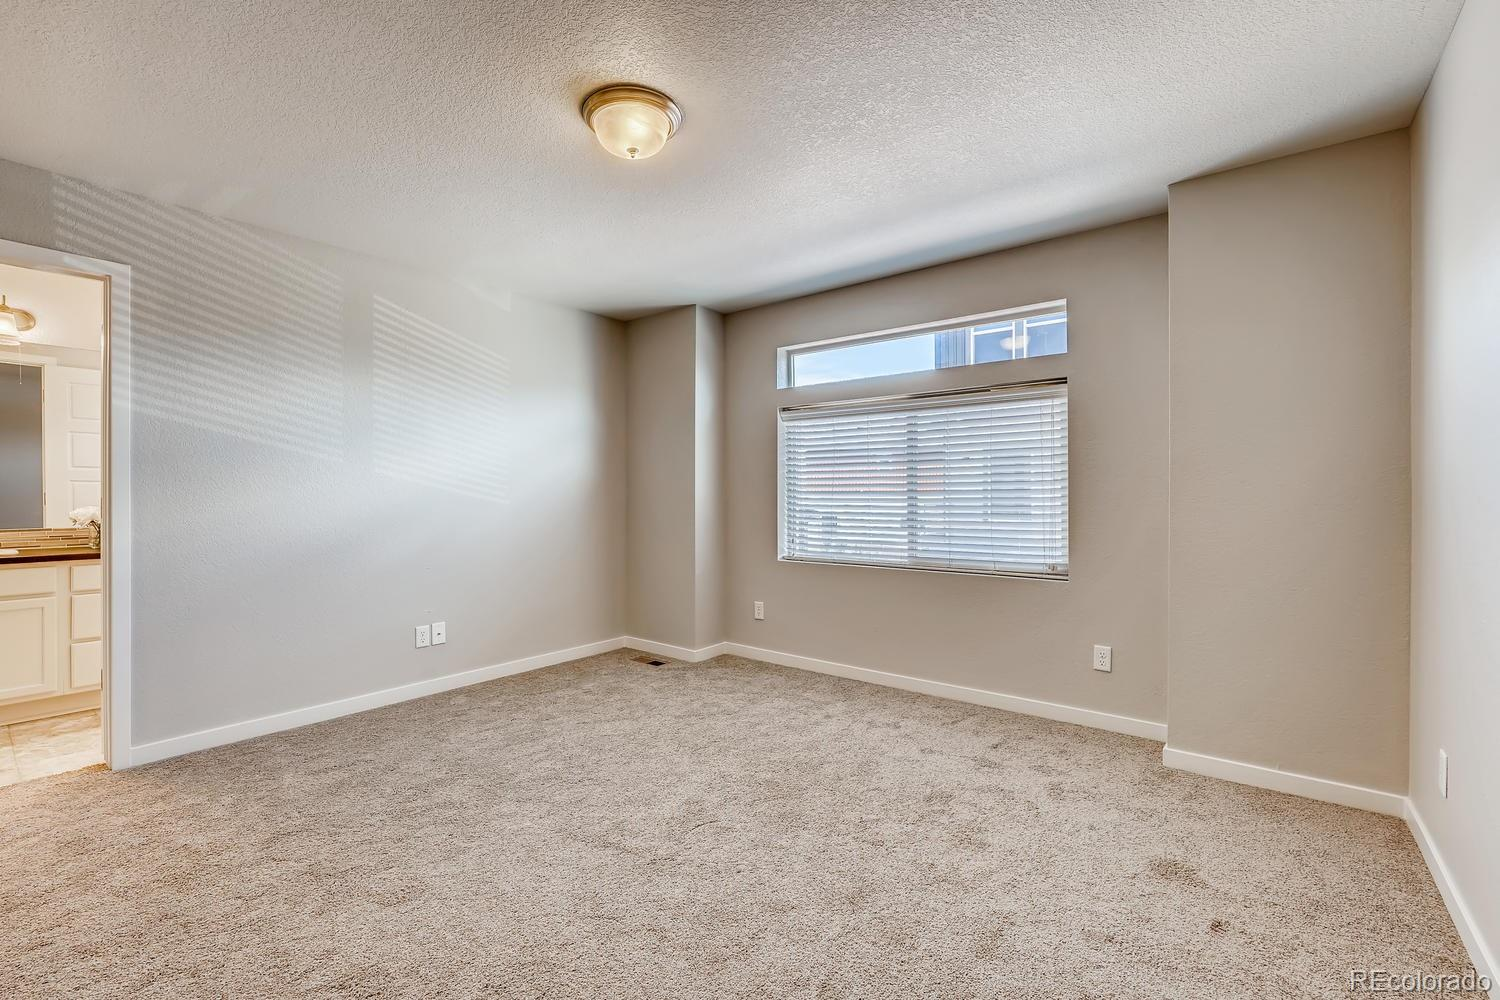 MLS# 8359032 - 12 - 5226 Andes Street, Denver, CO 80249